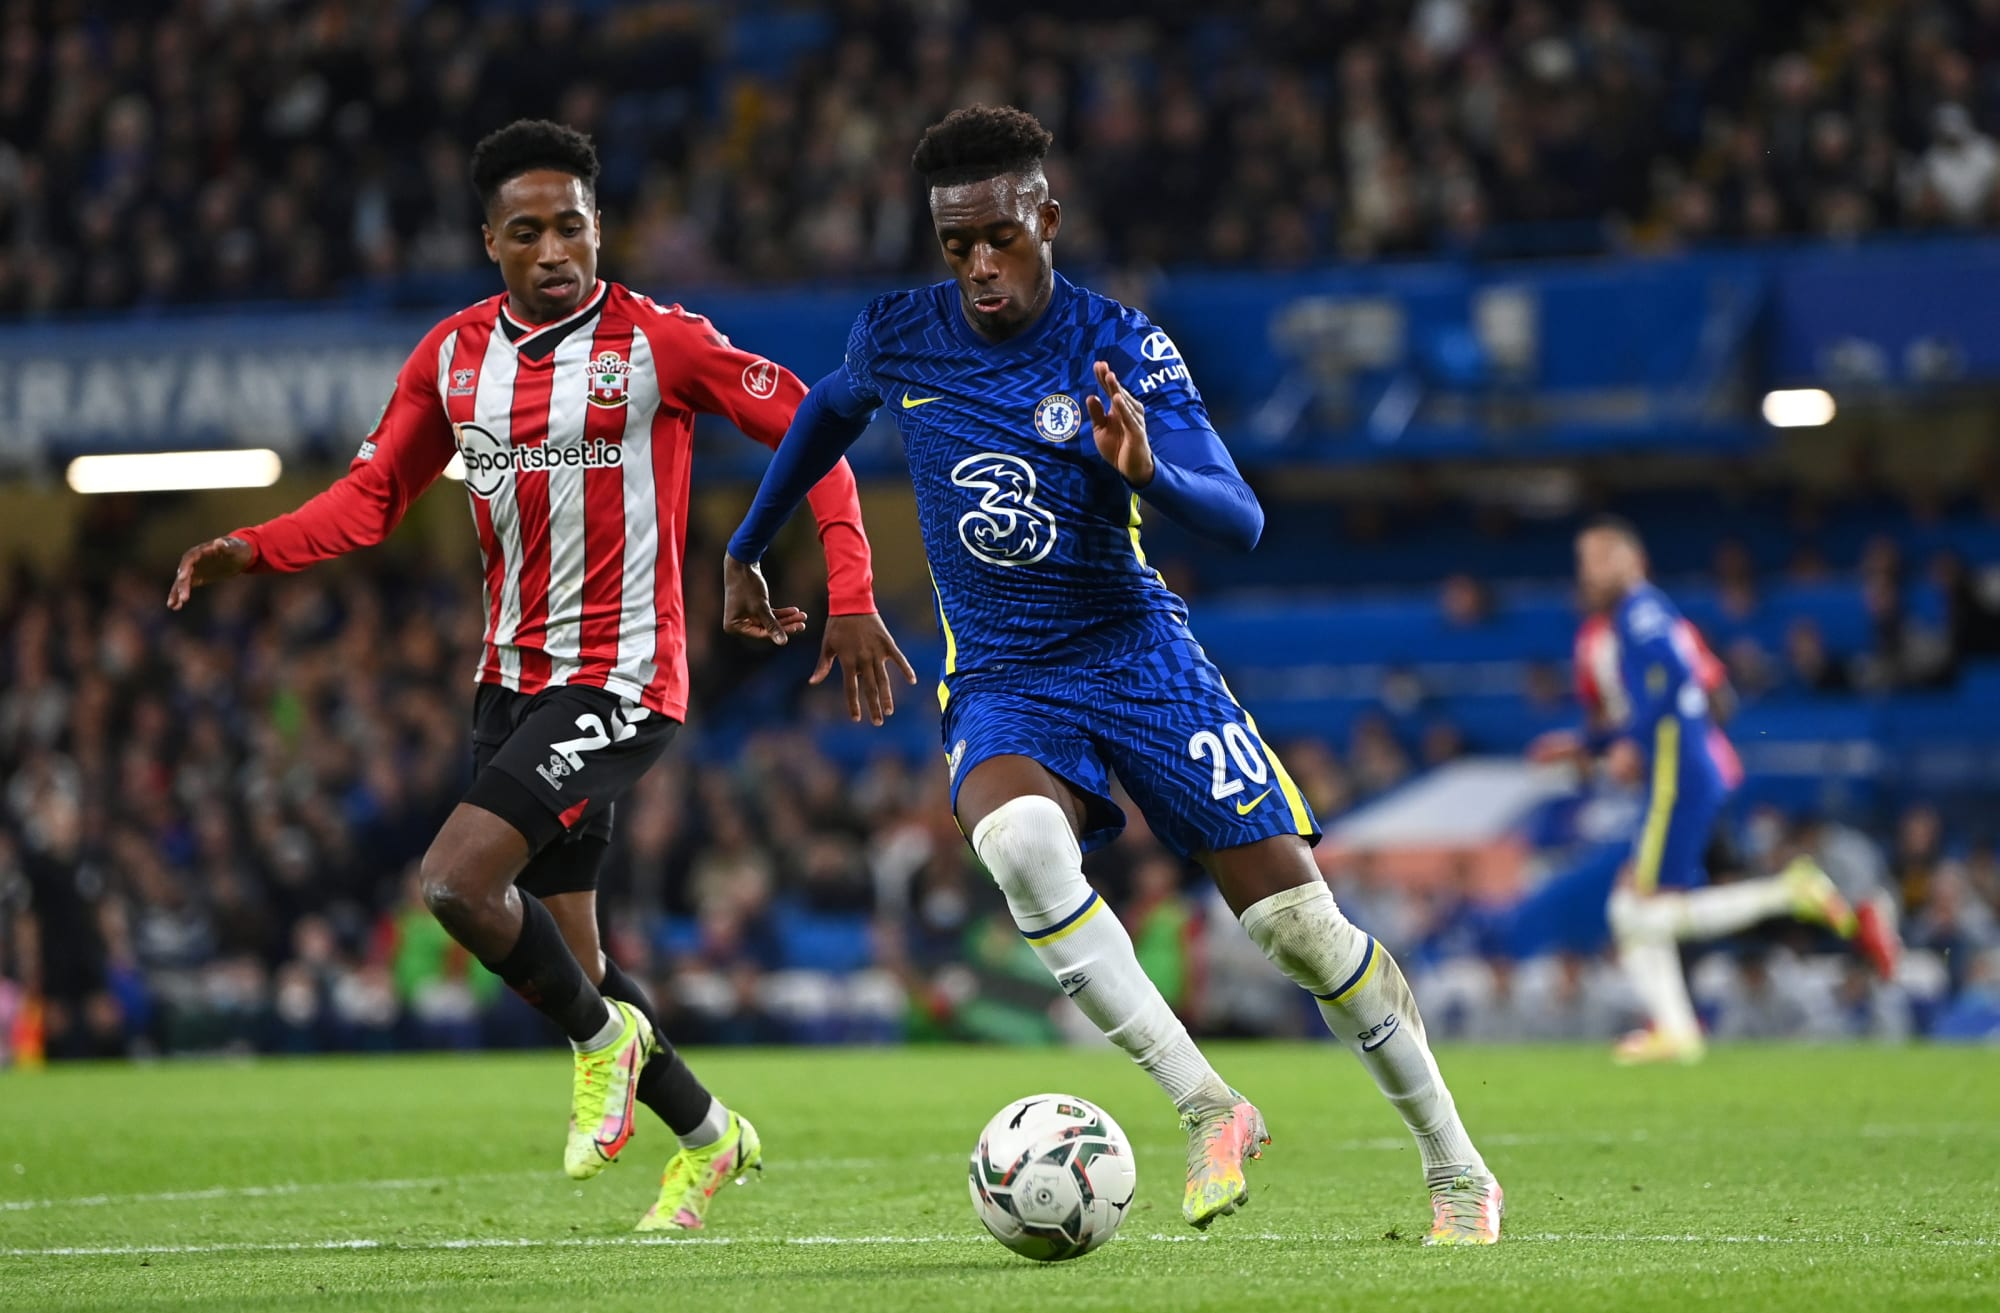 Chelsea vs Southampton three lessons learnt: Another shootout win